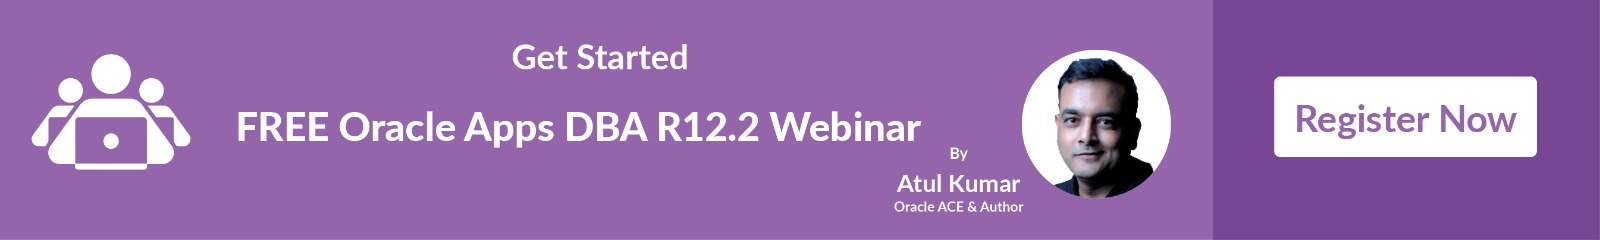 Register now to Get Oracle Apps DBA Webinar